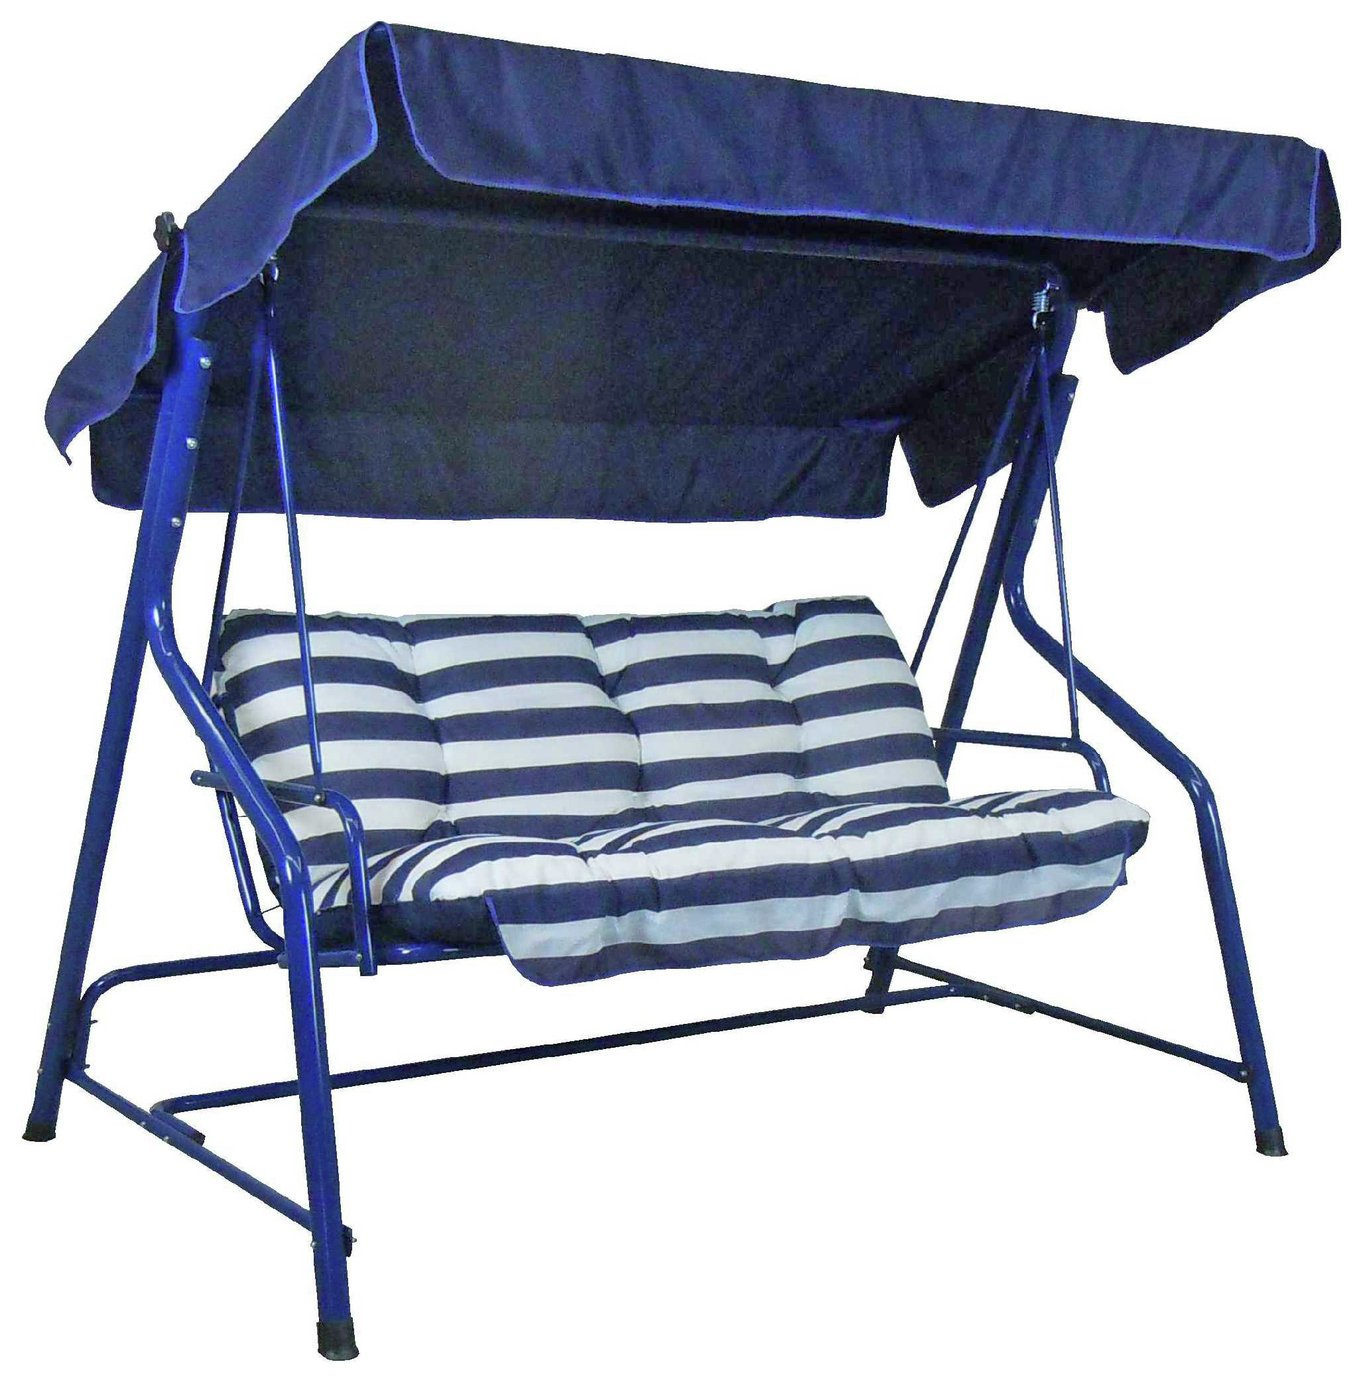 Argos Home Tubular 3 Seater Swing Hammock - Blue